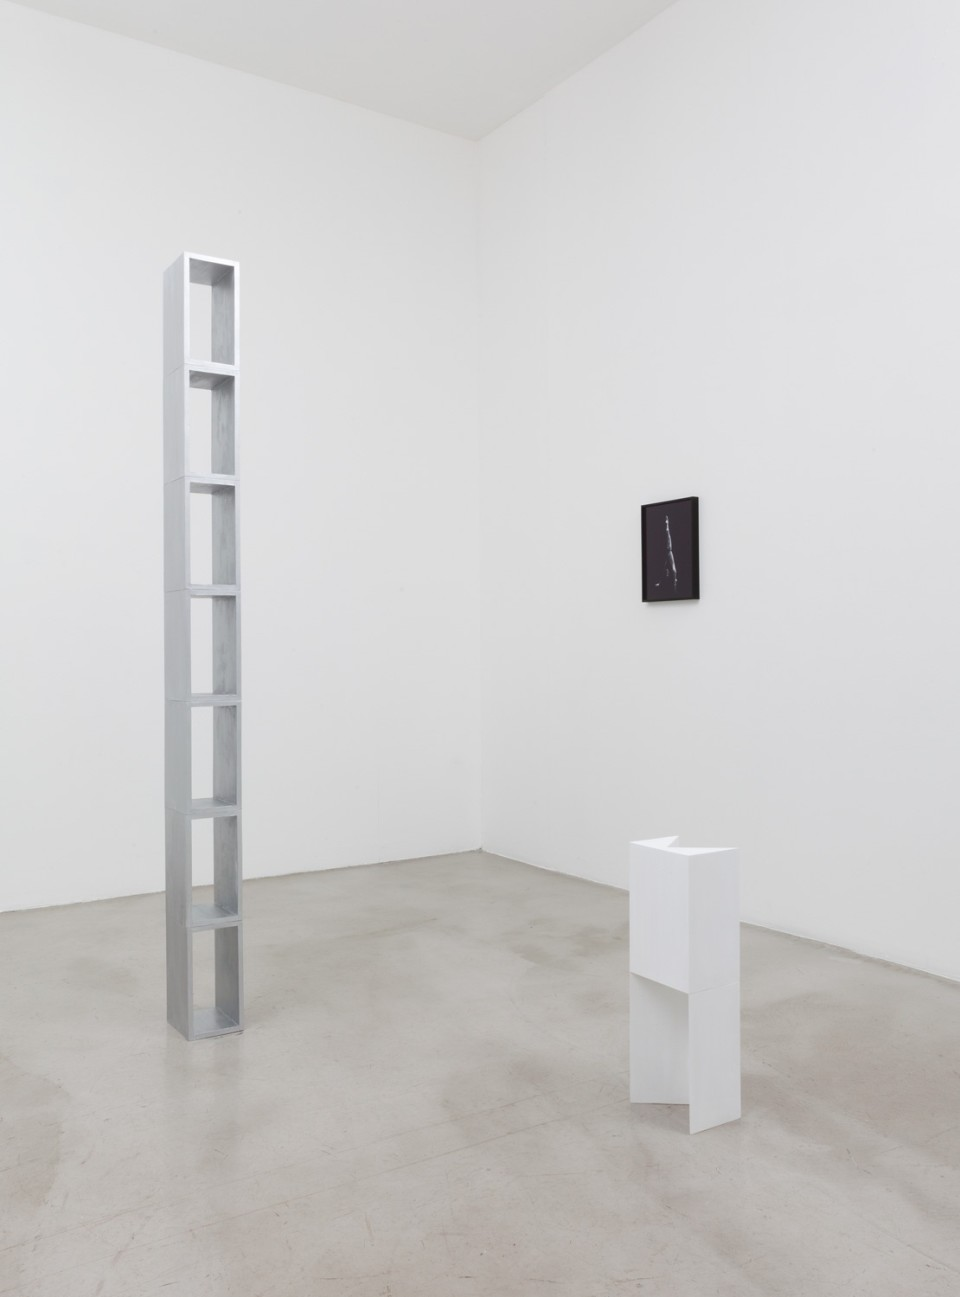 Image: Photography Sculpture Figure, curated by Matthew Dipple